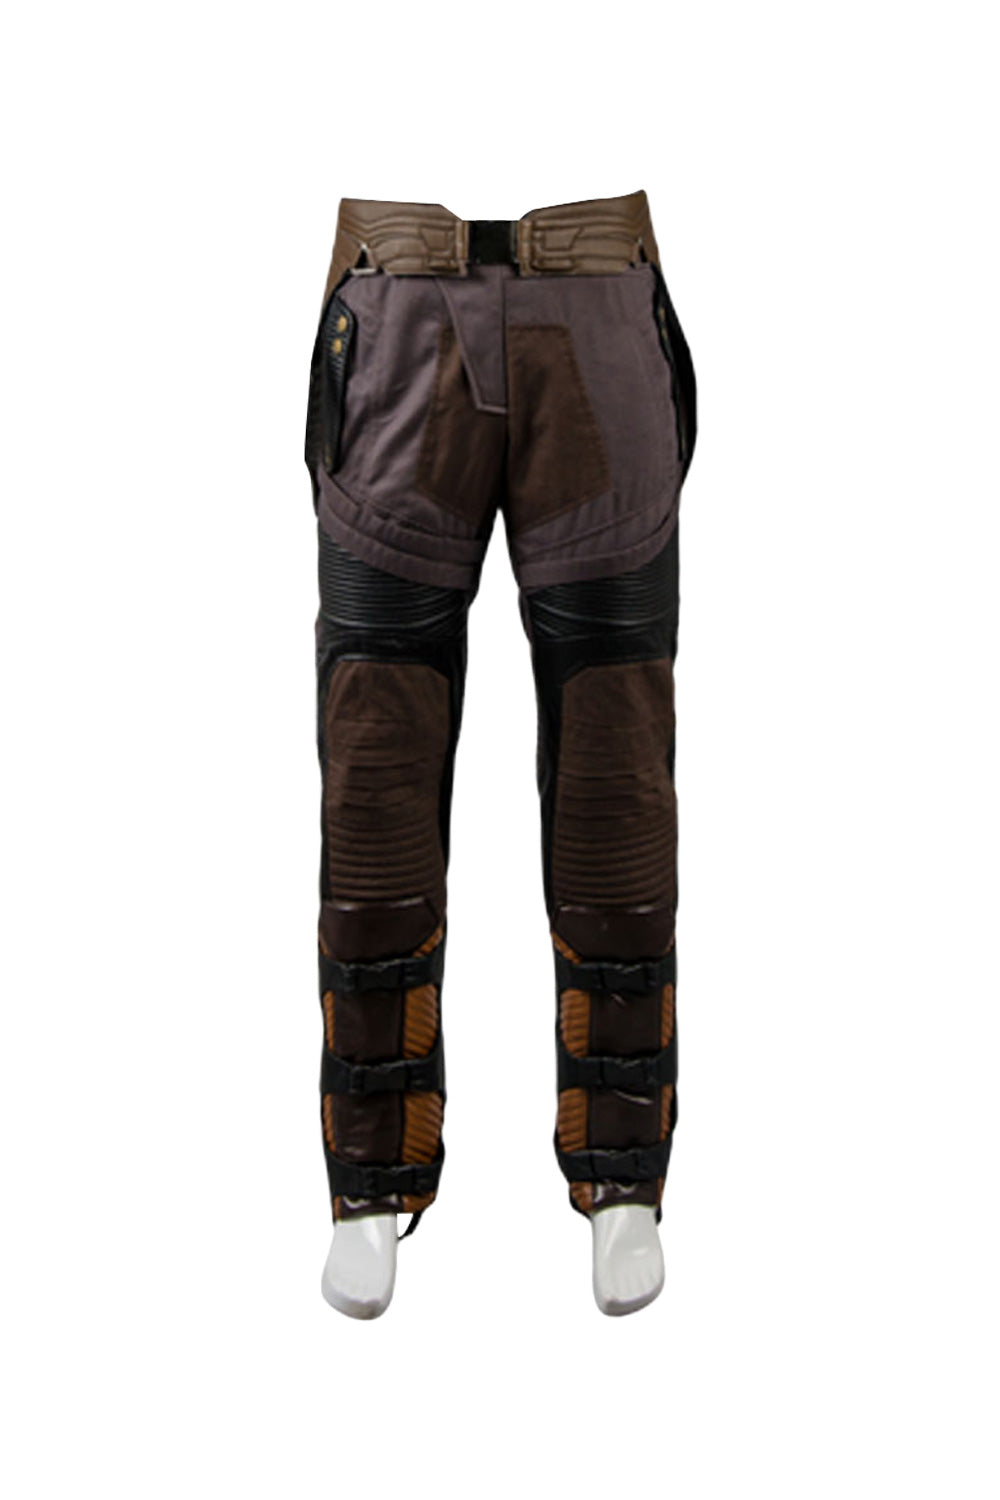 Guardians of the Galaxy 2 Chris Pratt Starlord Nur Hose Cosplay Kostüm